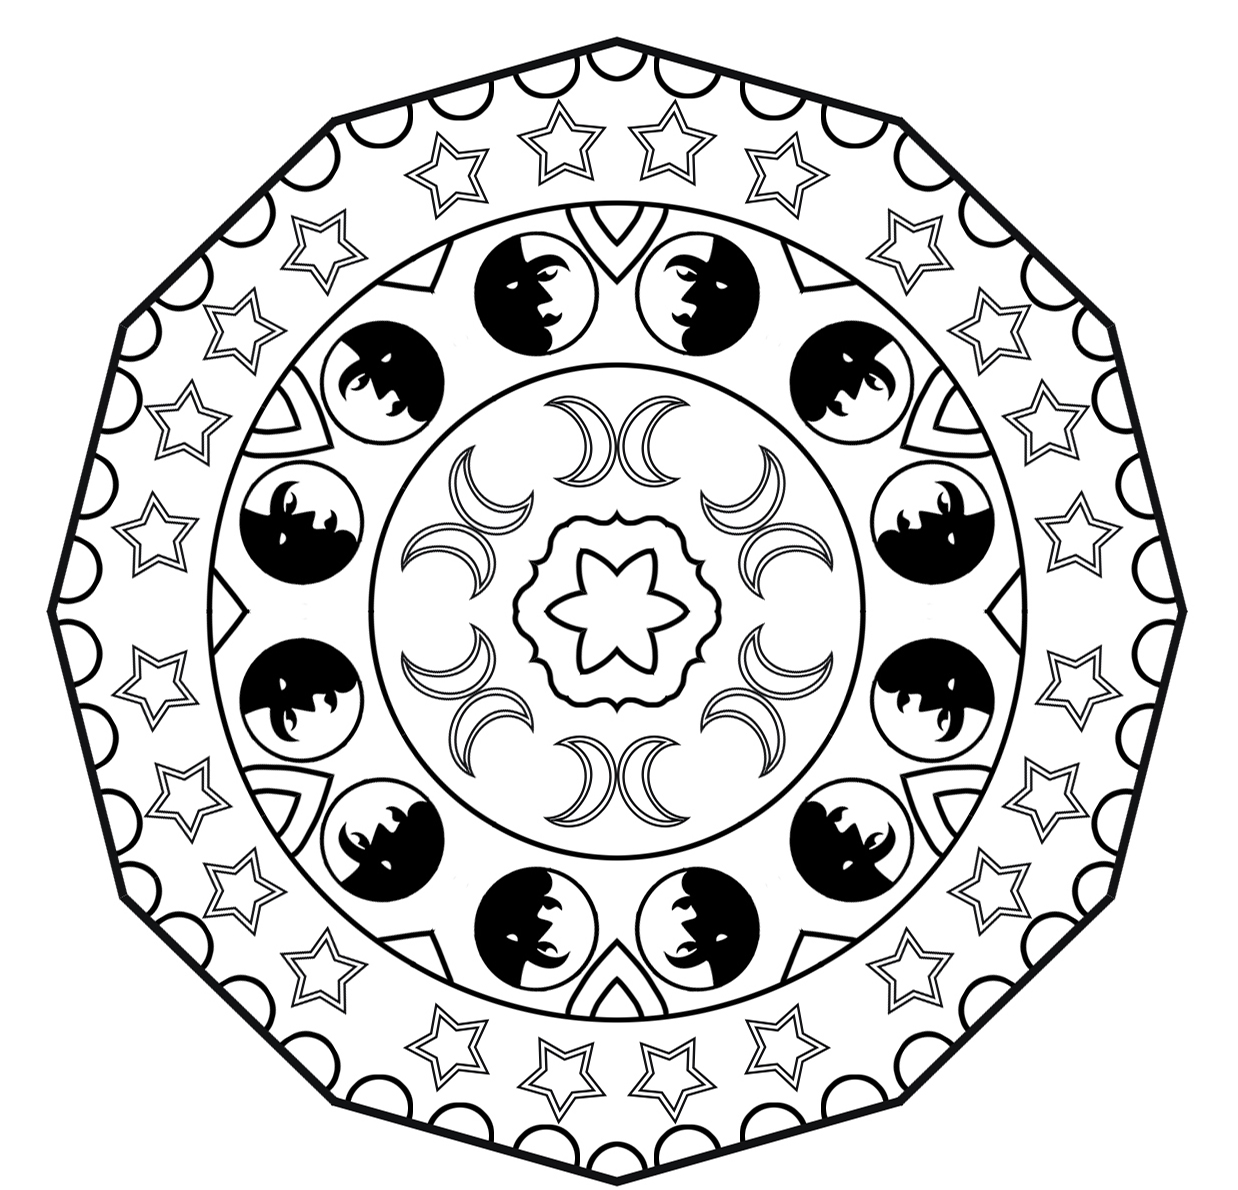 Moon and star mandala